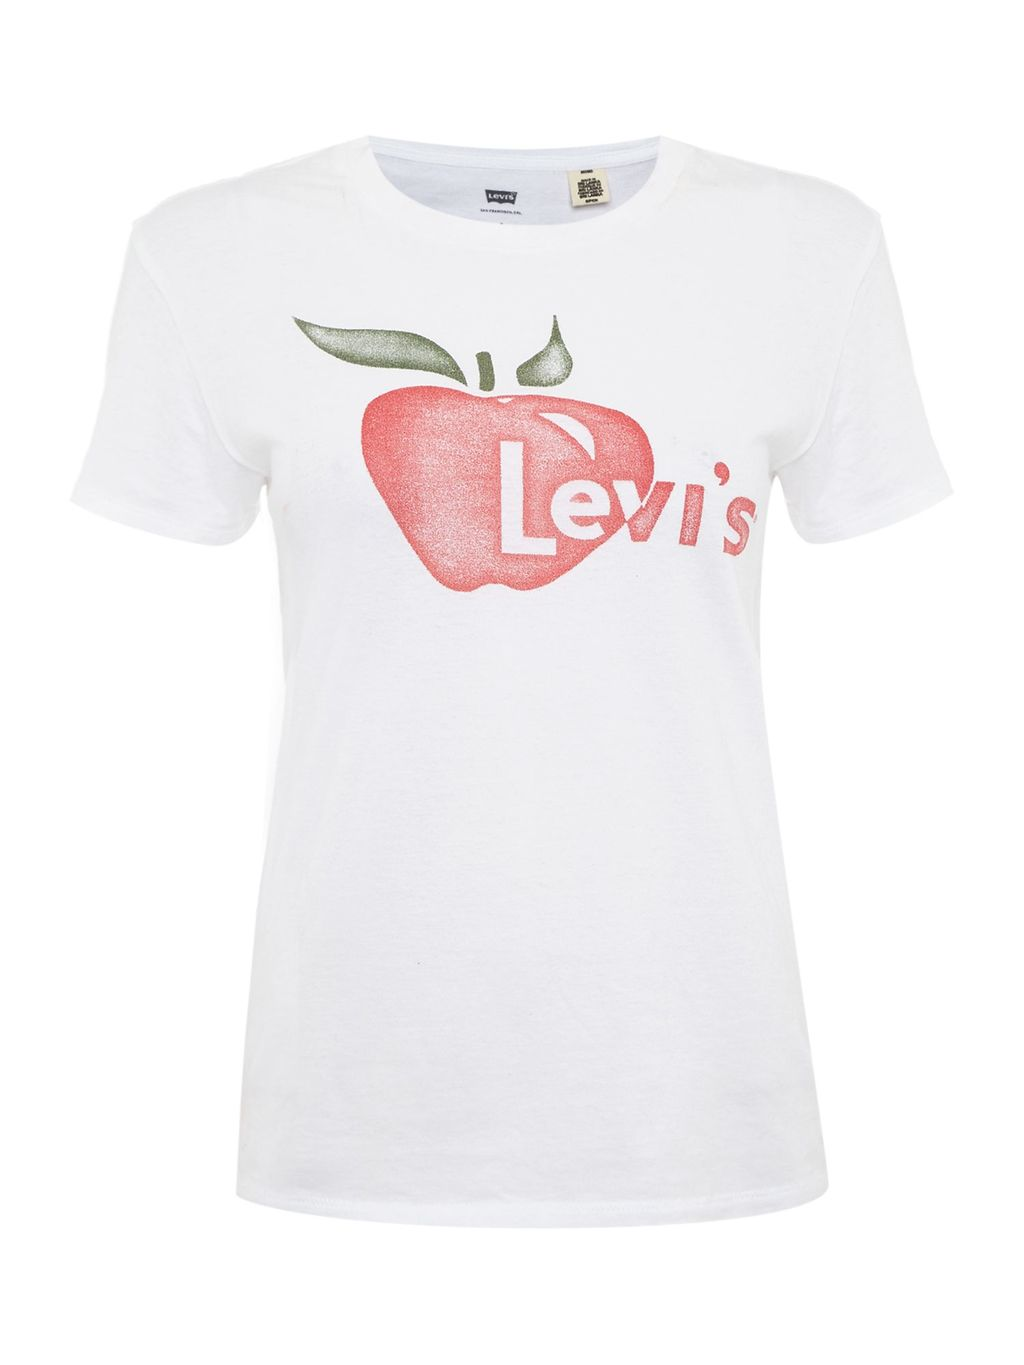 Short Sleeve Vintage Logo Tee In Apple White, White - style: t-shirt; predominant colour: white; secondary colour: true red; occasions: casual; length: standard; fibres: cotton - 100%; fit: body skimming; neckline: crew; sleeve length: short sleeve; sleeve style: standard; pattern type: fabric; texture group: jersey - stretchy/drapey; pattern: graphic/slogan; multicoloured: multicoloured; season: a/w 2016; wardrobe: highlight